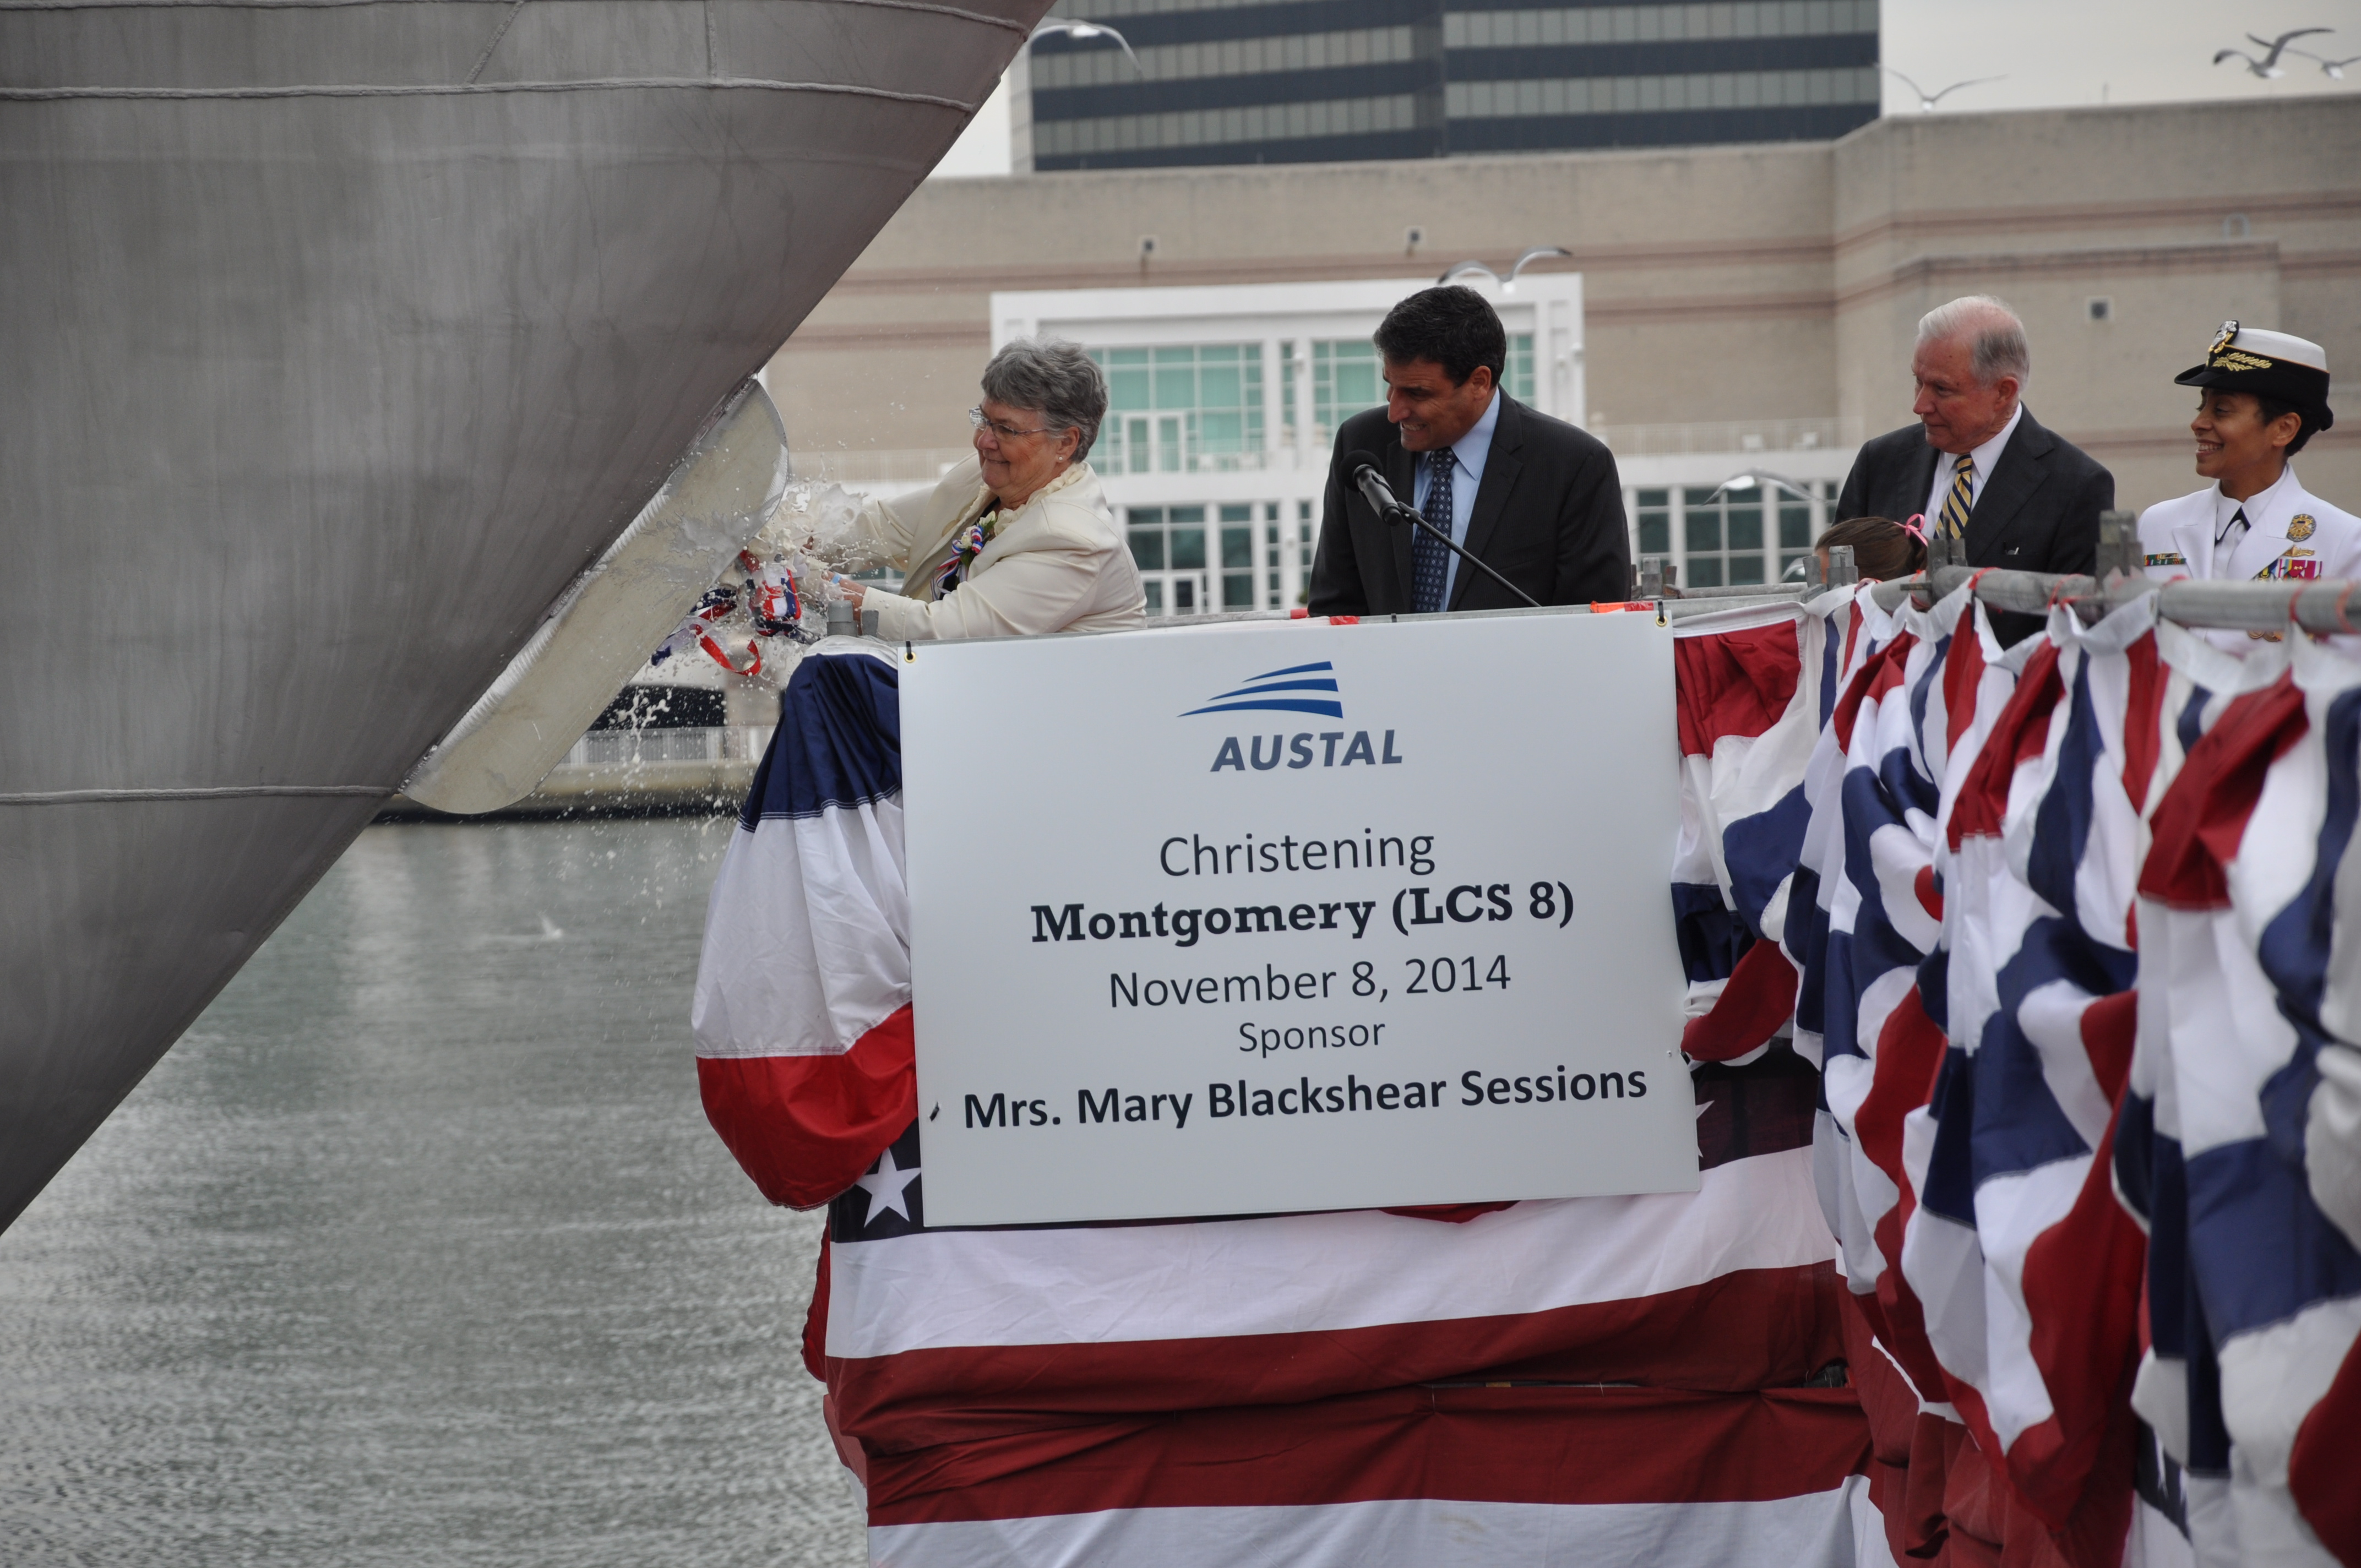 Mary Blackshear Sessions christens the littoral combat ship Pre-Commissioning Unit (PCU) Montgomery (LCS 8) at the Austal USA shipyard in Mobile, Ala., on Nov. 8, 2014. US Navy photo.